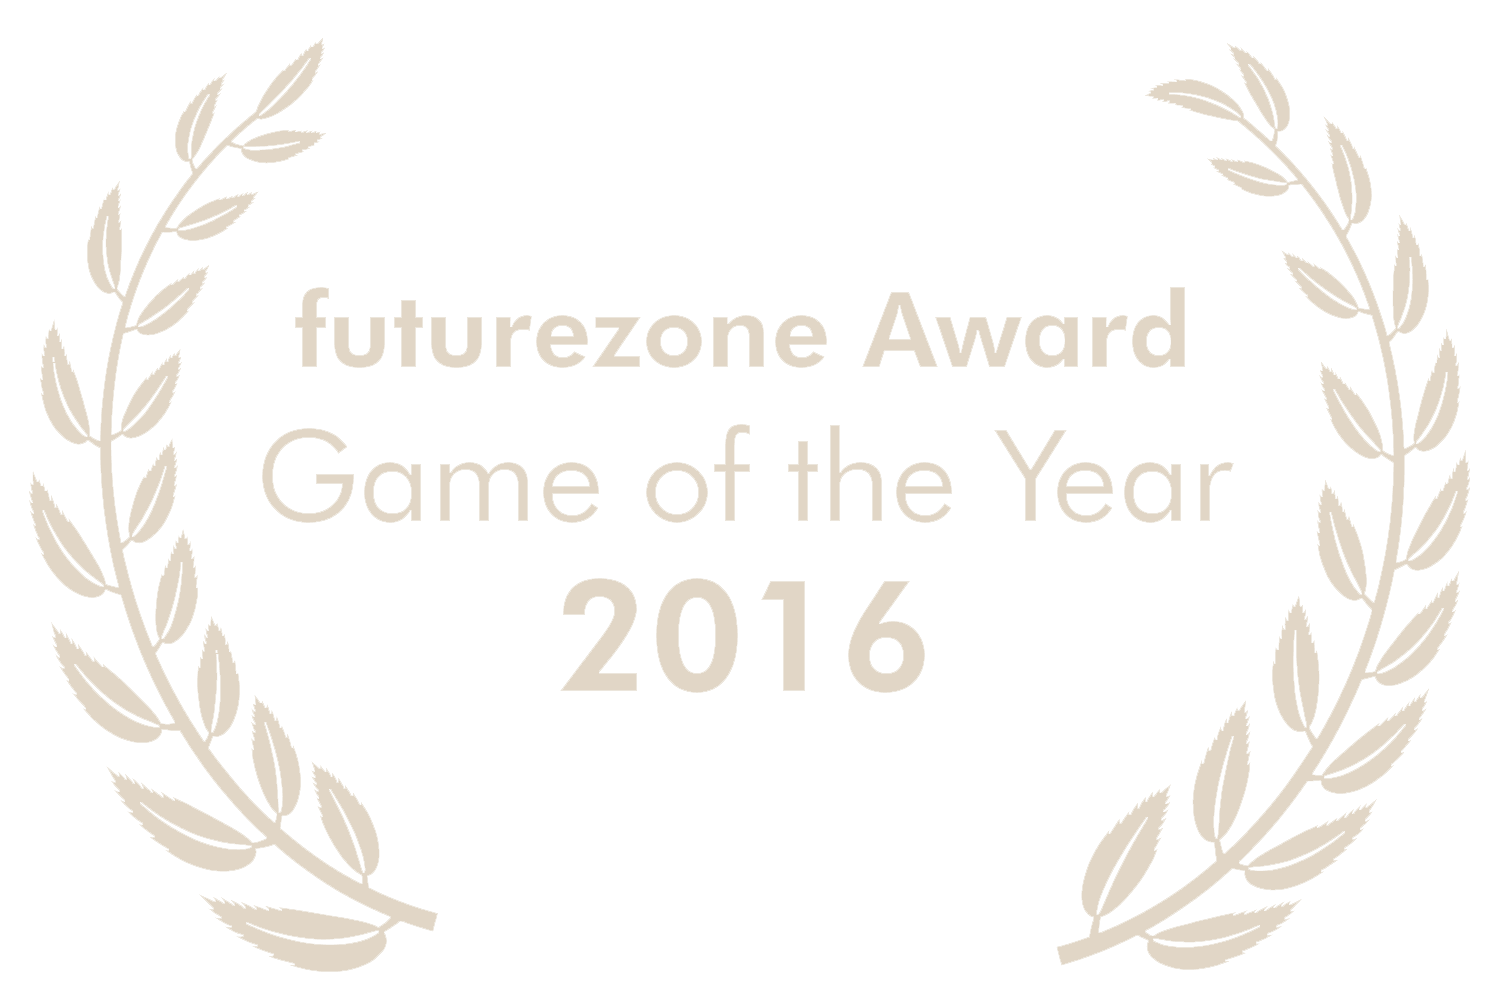 Futurezone Game of the Year Award